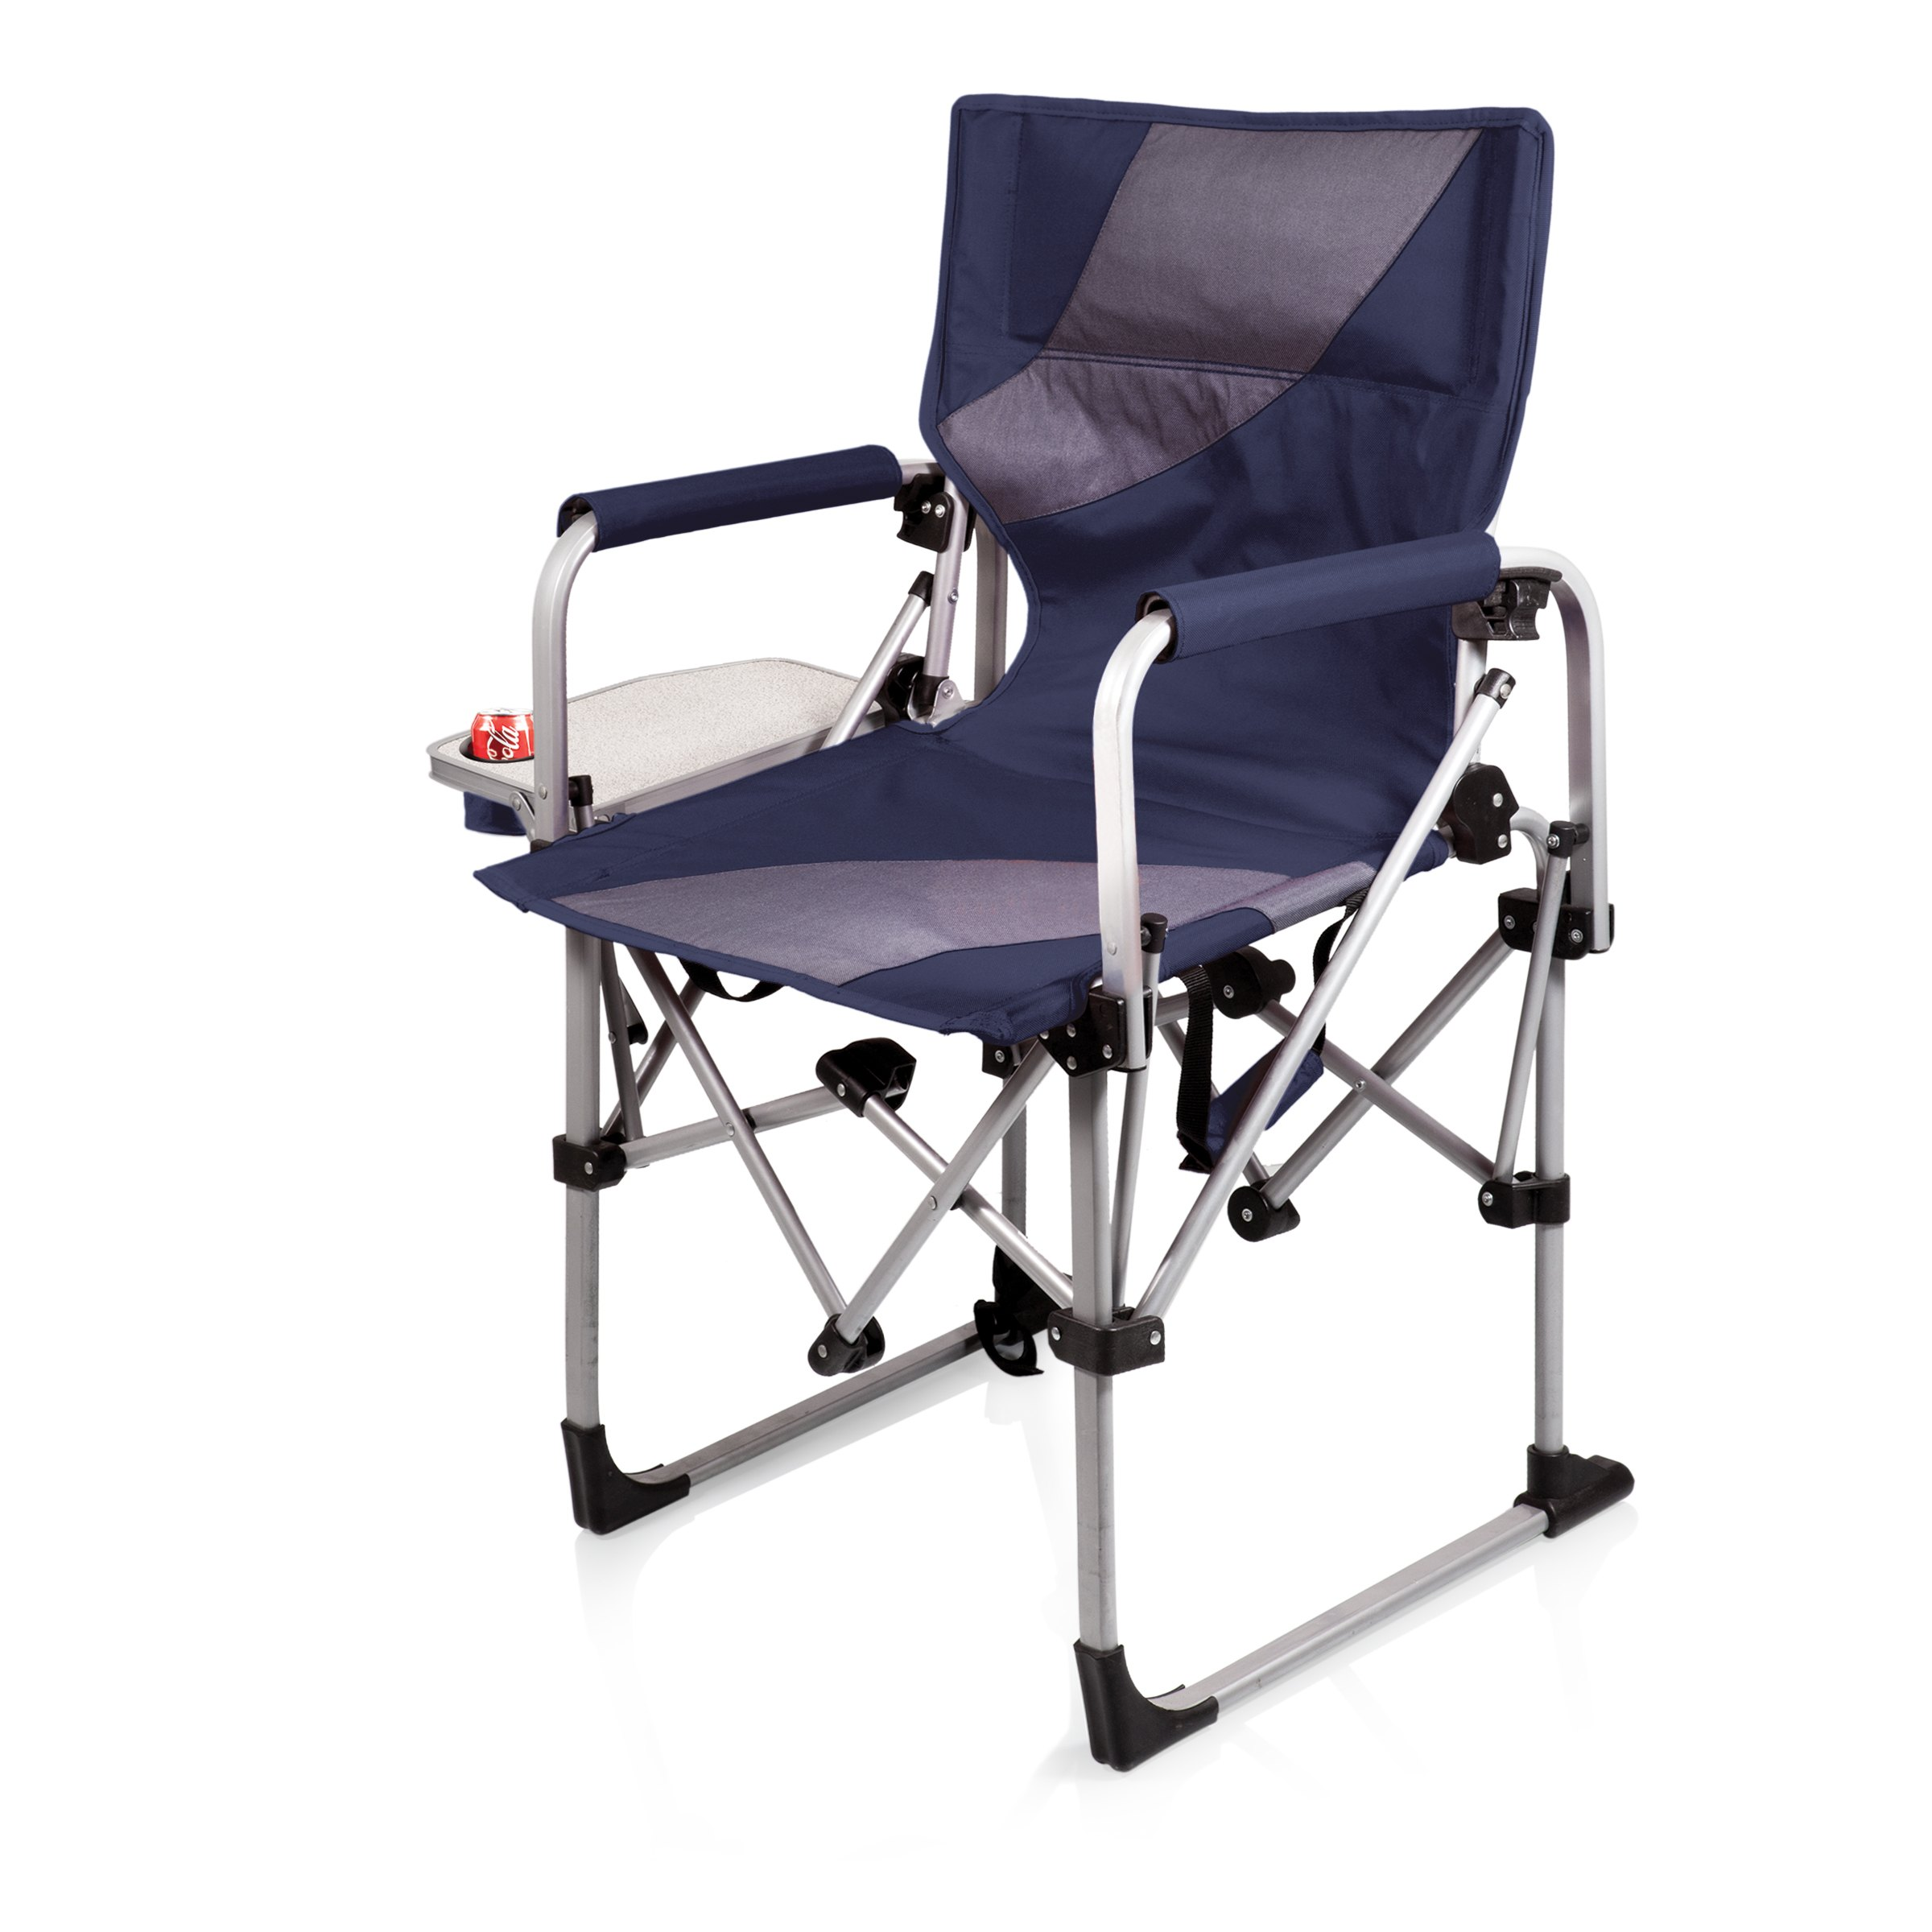 Folding Chairs & Reviews